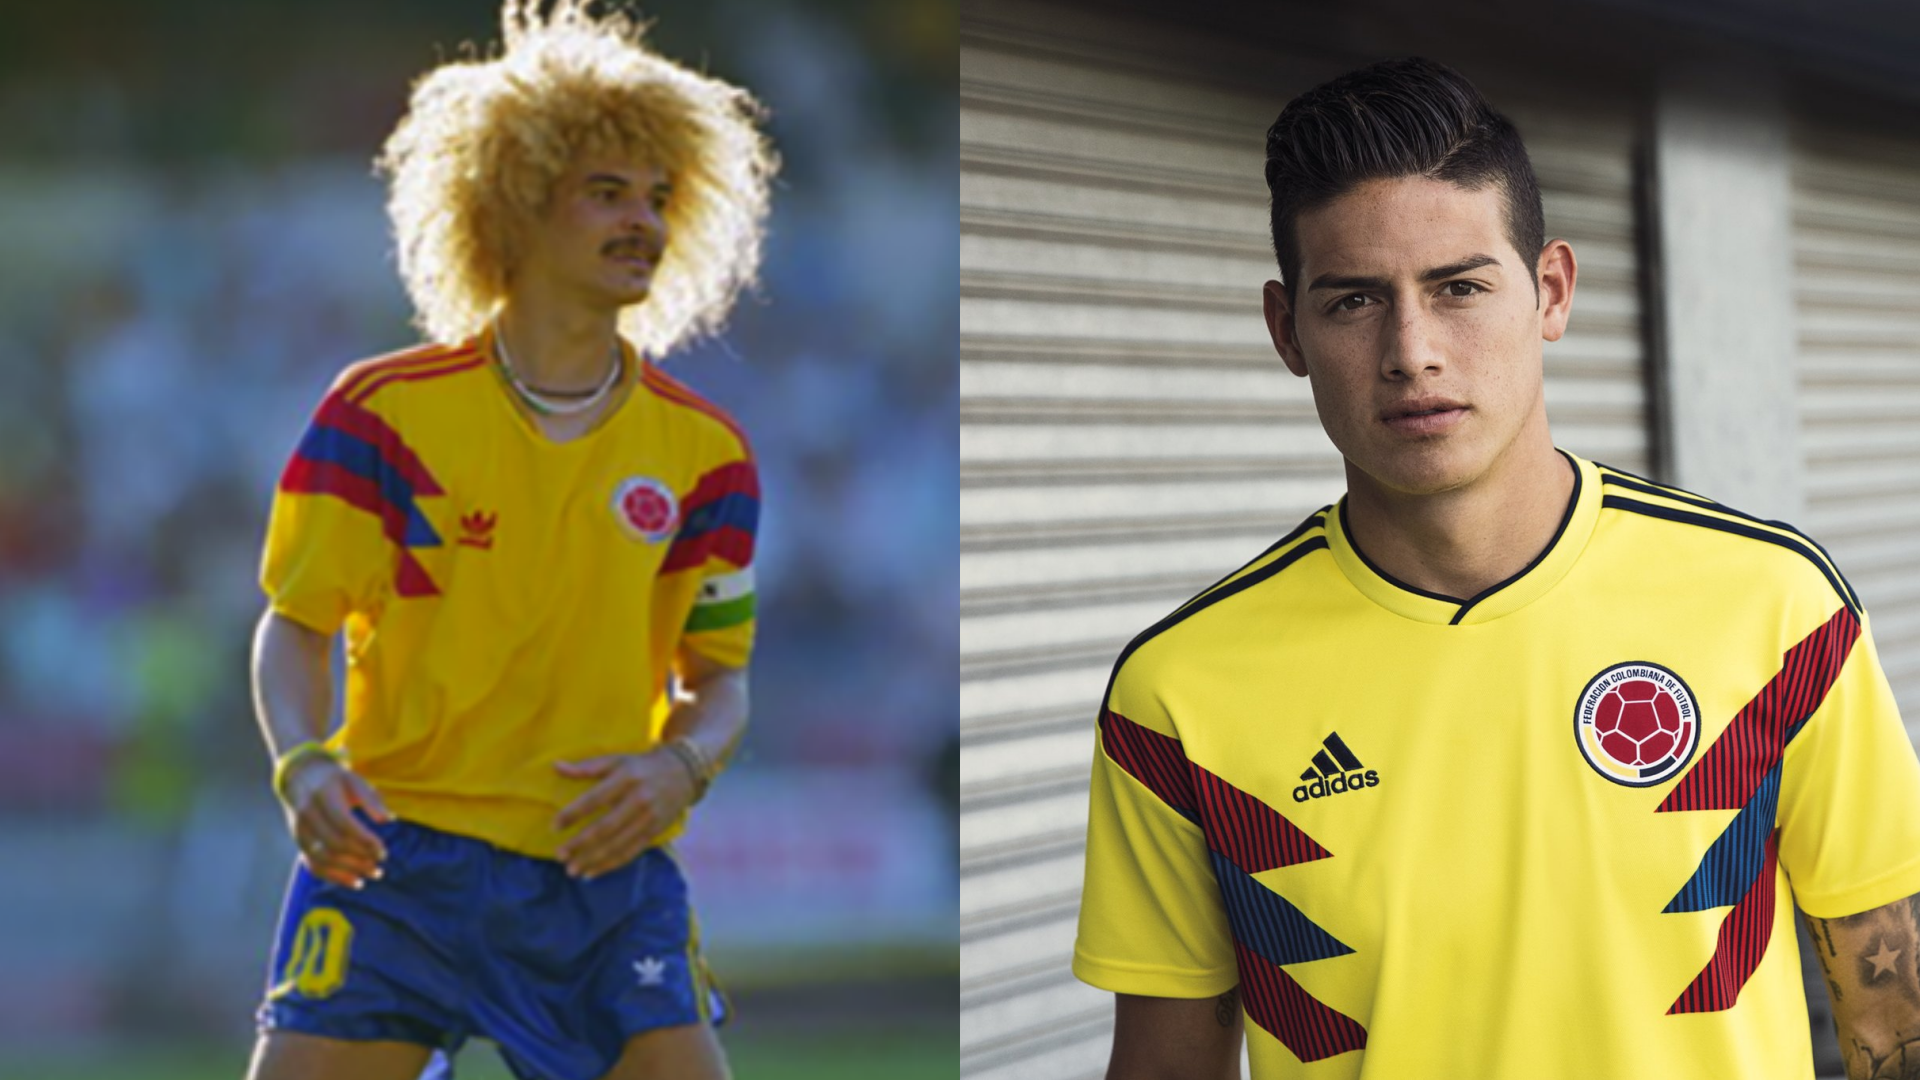 Colombia 1990-2018